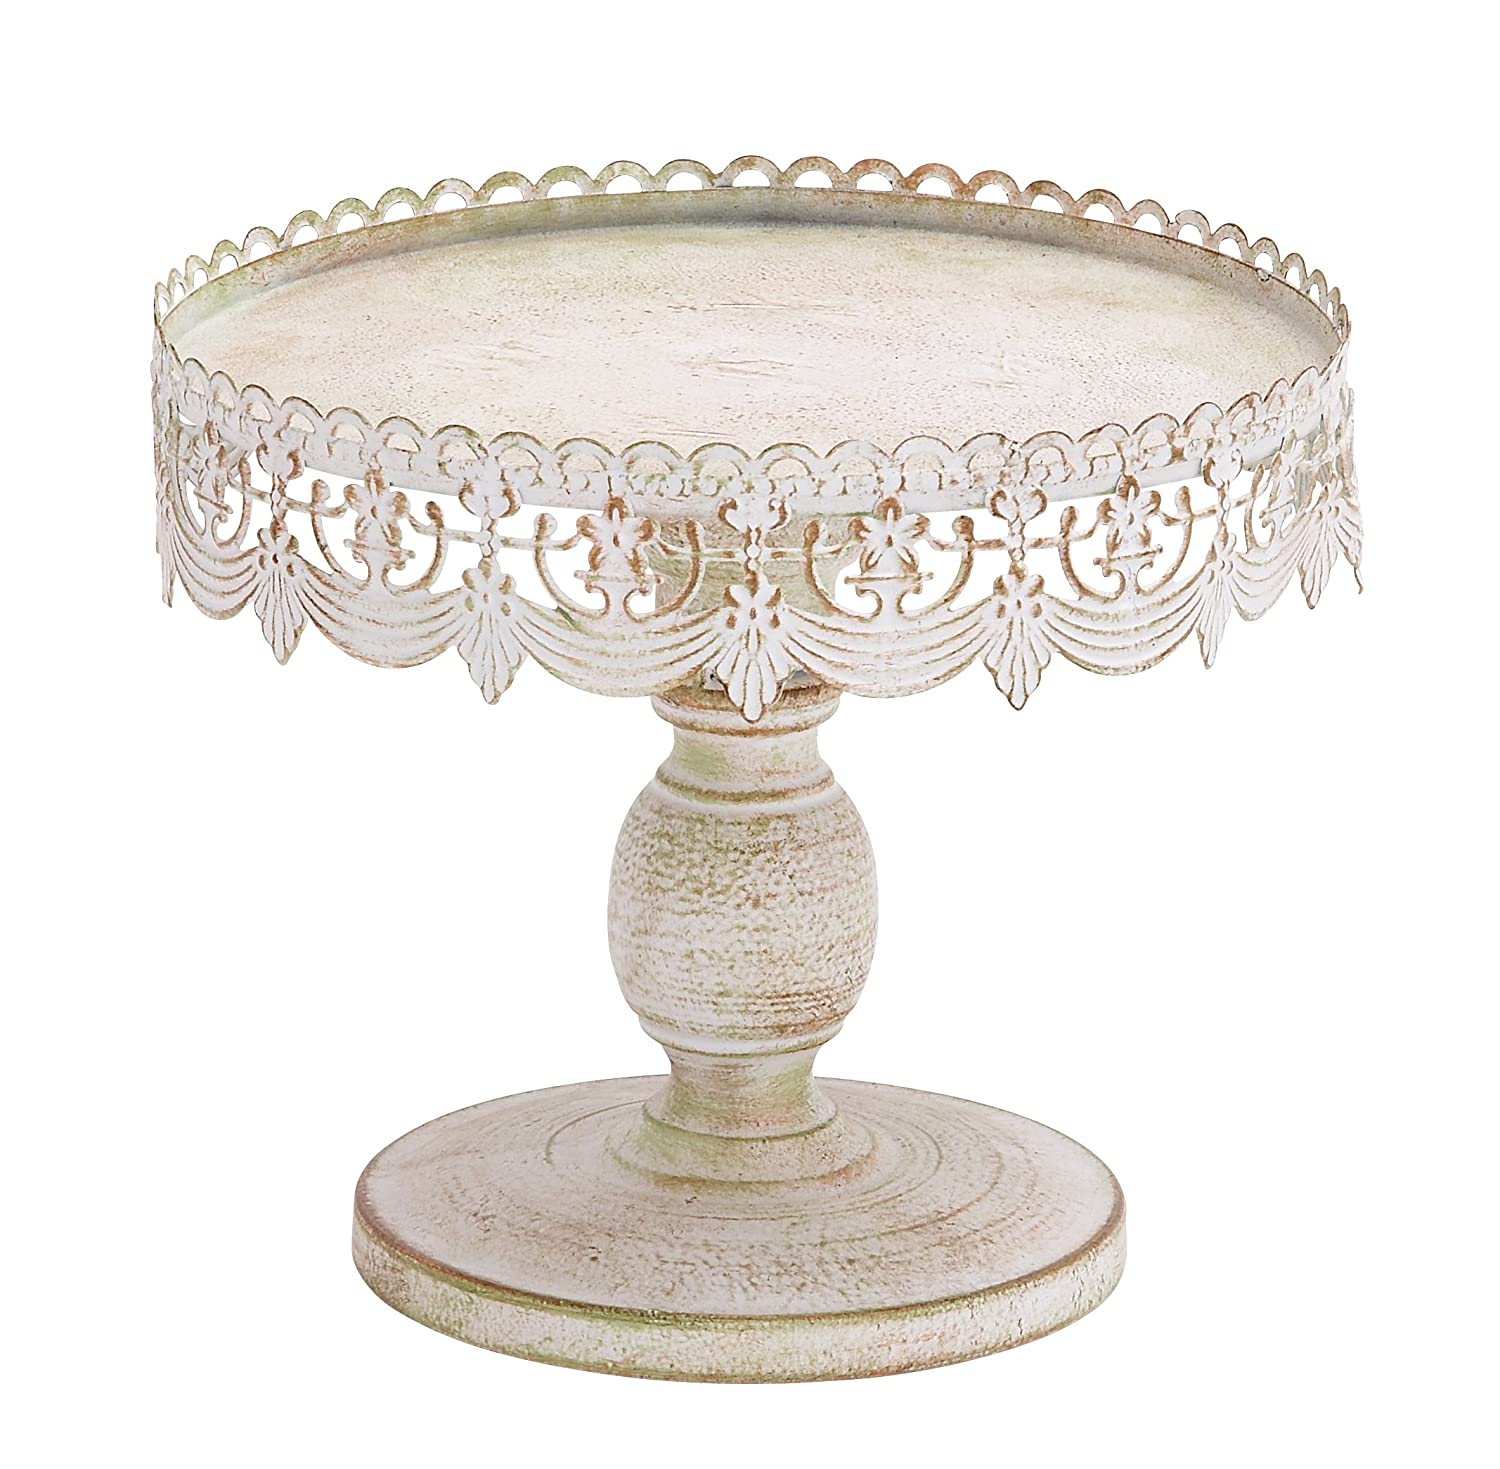 Uncategorized Best Cake Stands amazon com deco 79 traditional style decorative cake stand stands